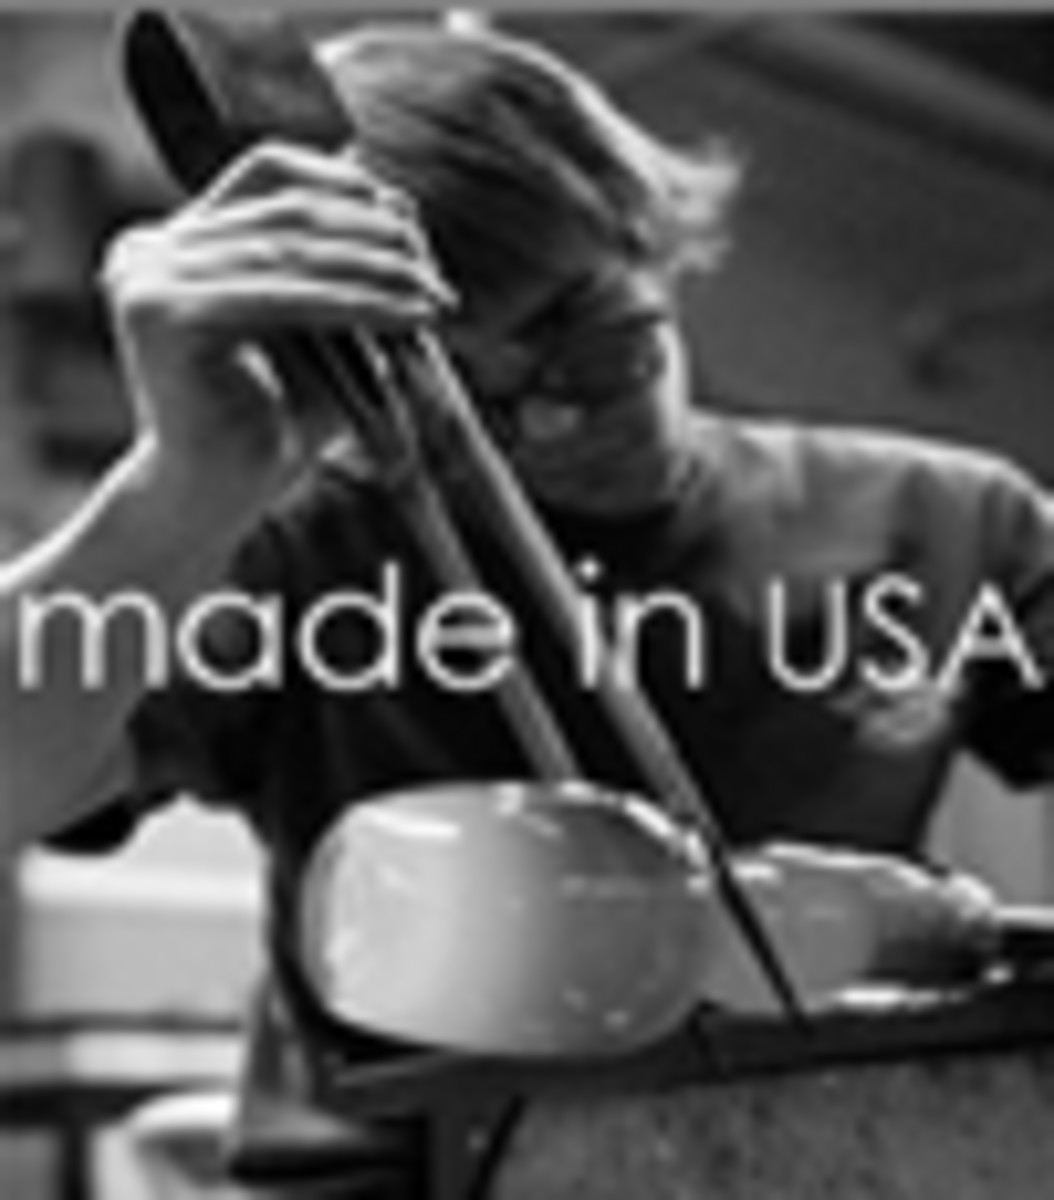 footer_made_in_usa